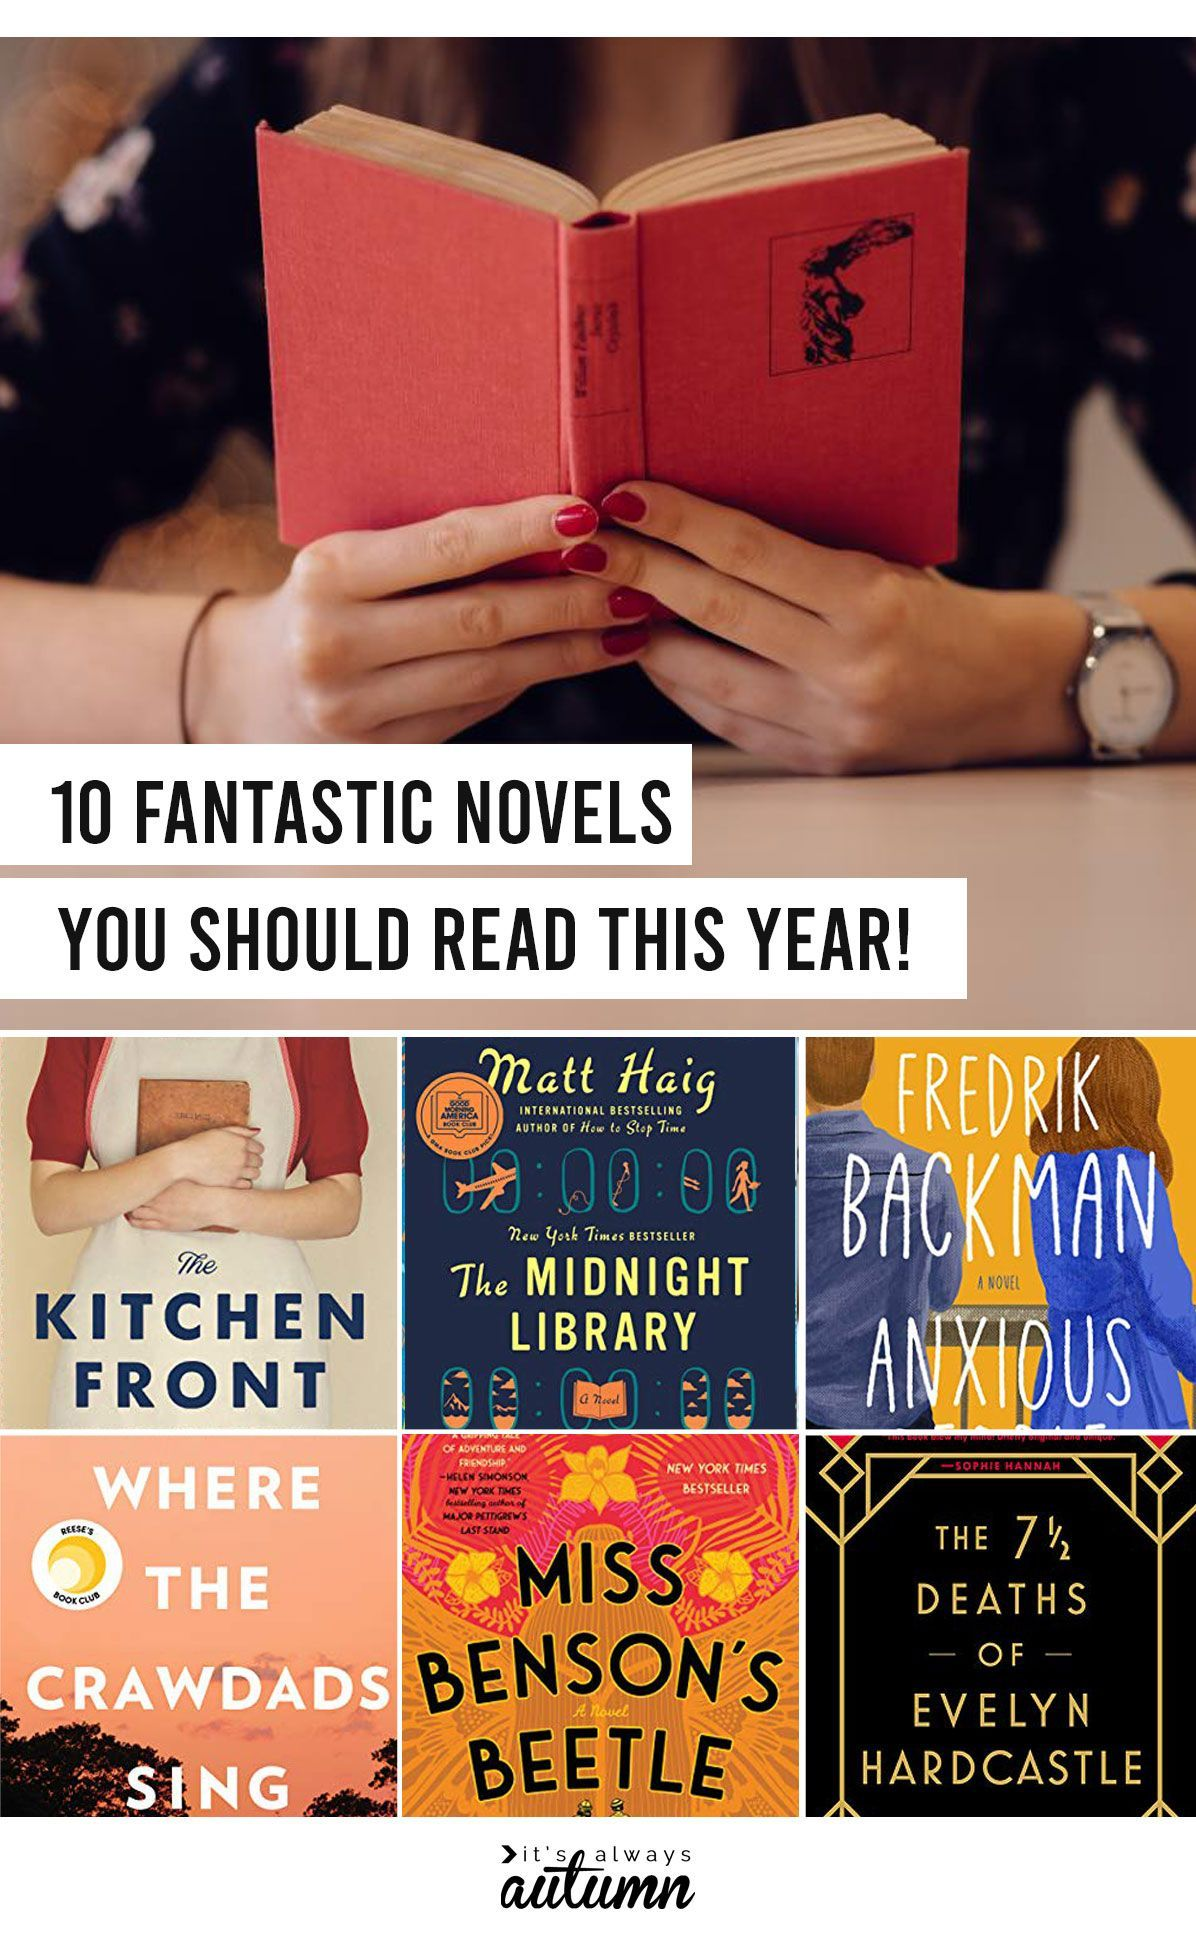 Find ten fantastic novels you should read this year. Wonderful book list for book clubs!